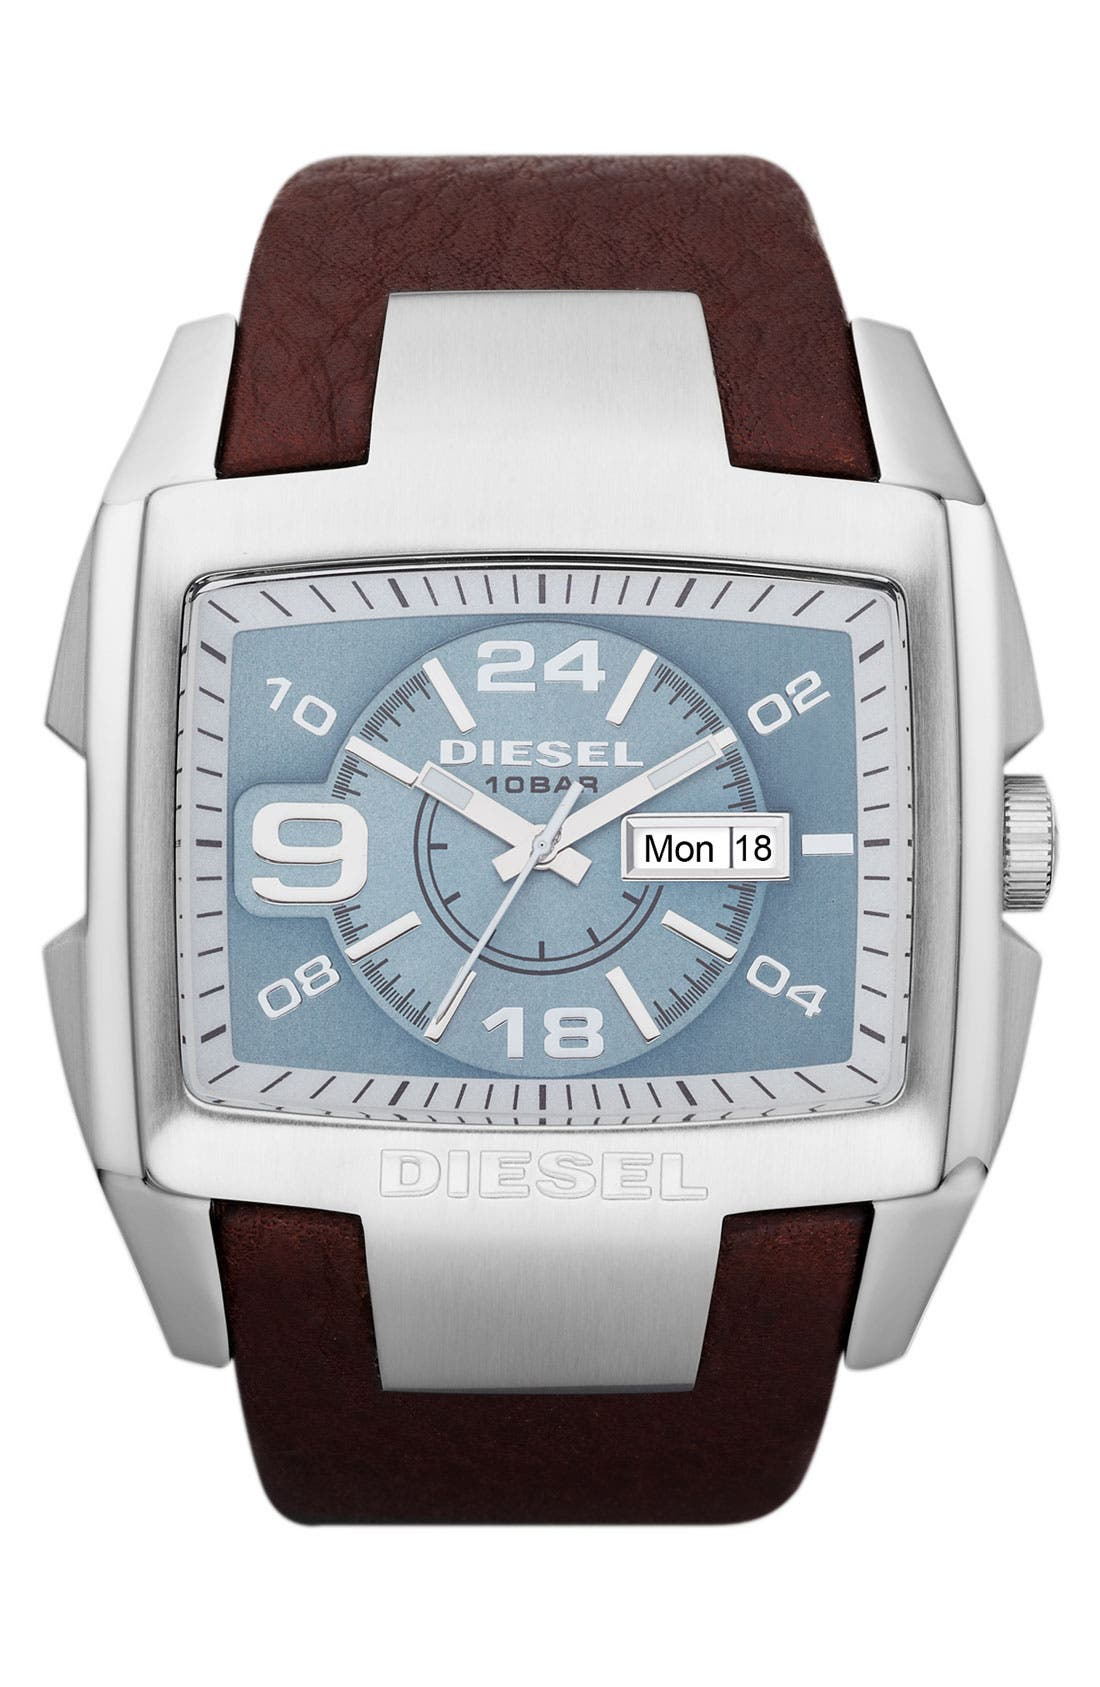 Main Image - DIESEL® 'Bugout' Leather Strap Watch, 54mm x 49mm